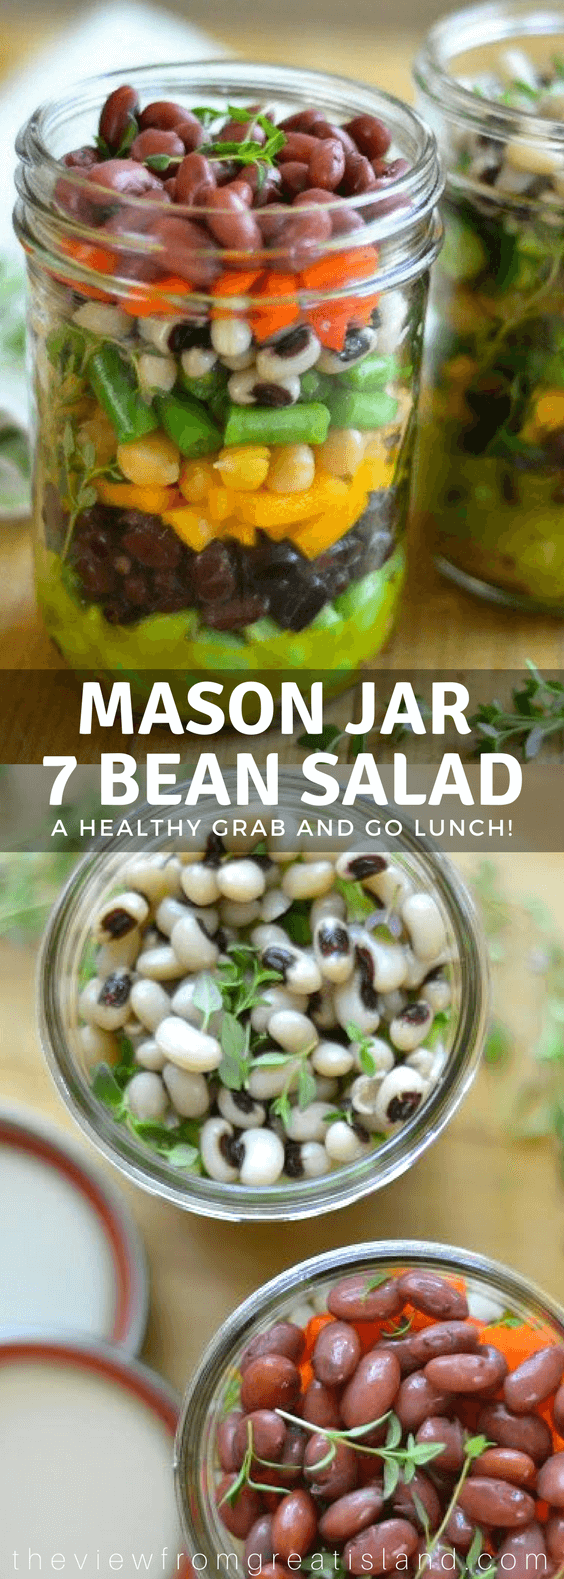 Mason Jar 7 Bean Salad ~ these healthy layered salad jars are the perfect grab and go lunch, put the dressing on the bottom, and flip them over when you're ready to eat! #healthy #salad #masonjar #layeredsalad #beansalad #9beansalad #picnic #Memorialday #4thofjuly #summersalad #nomayosalad #cannedbeans #blackbeans #blackeyedpeas